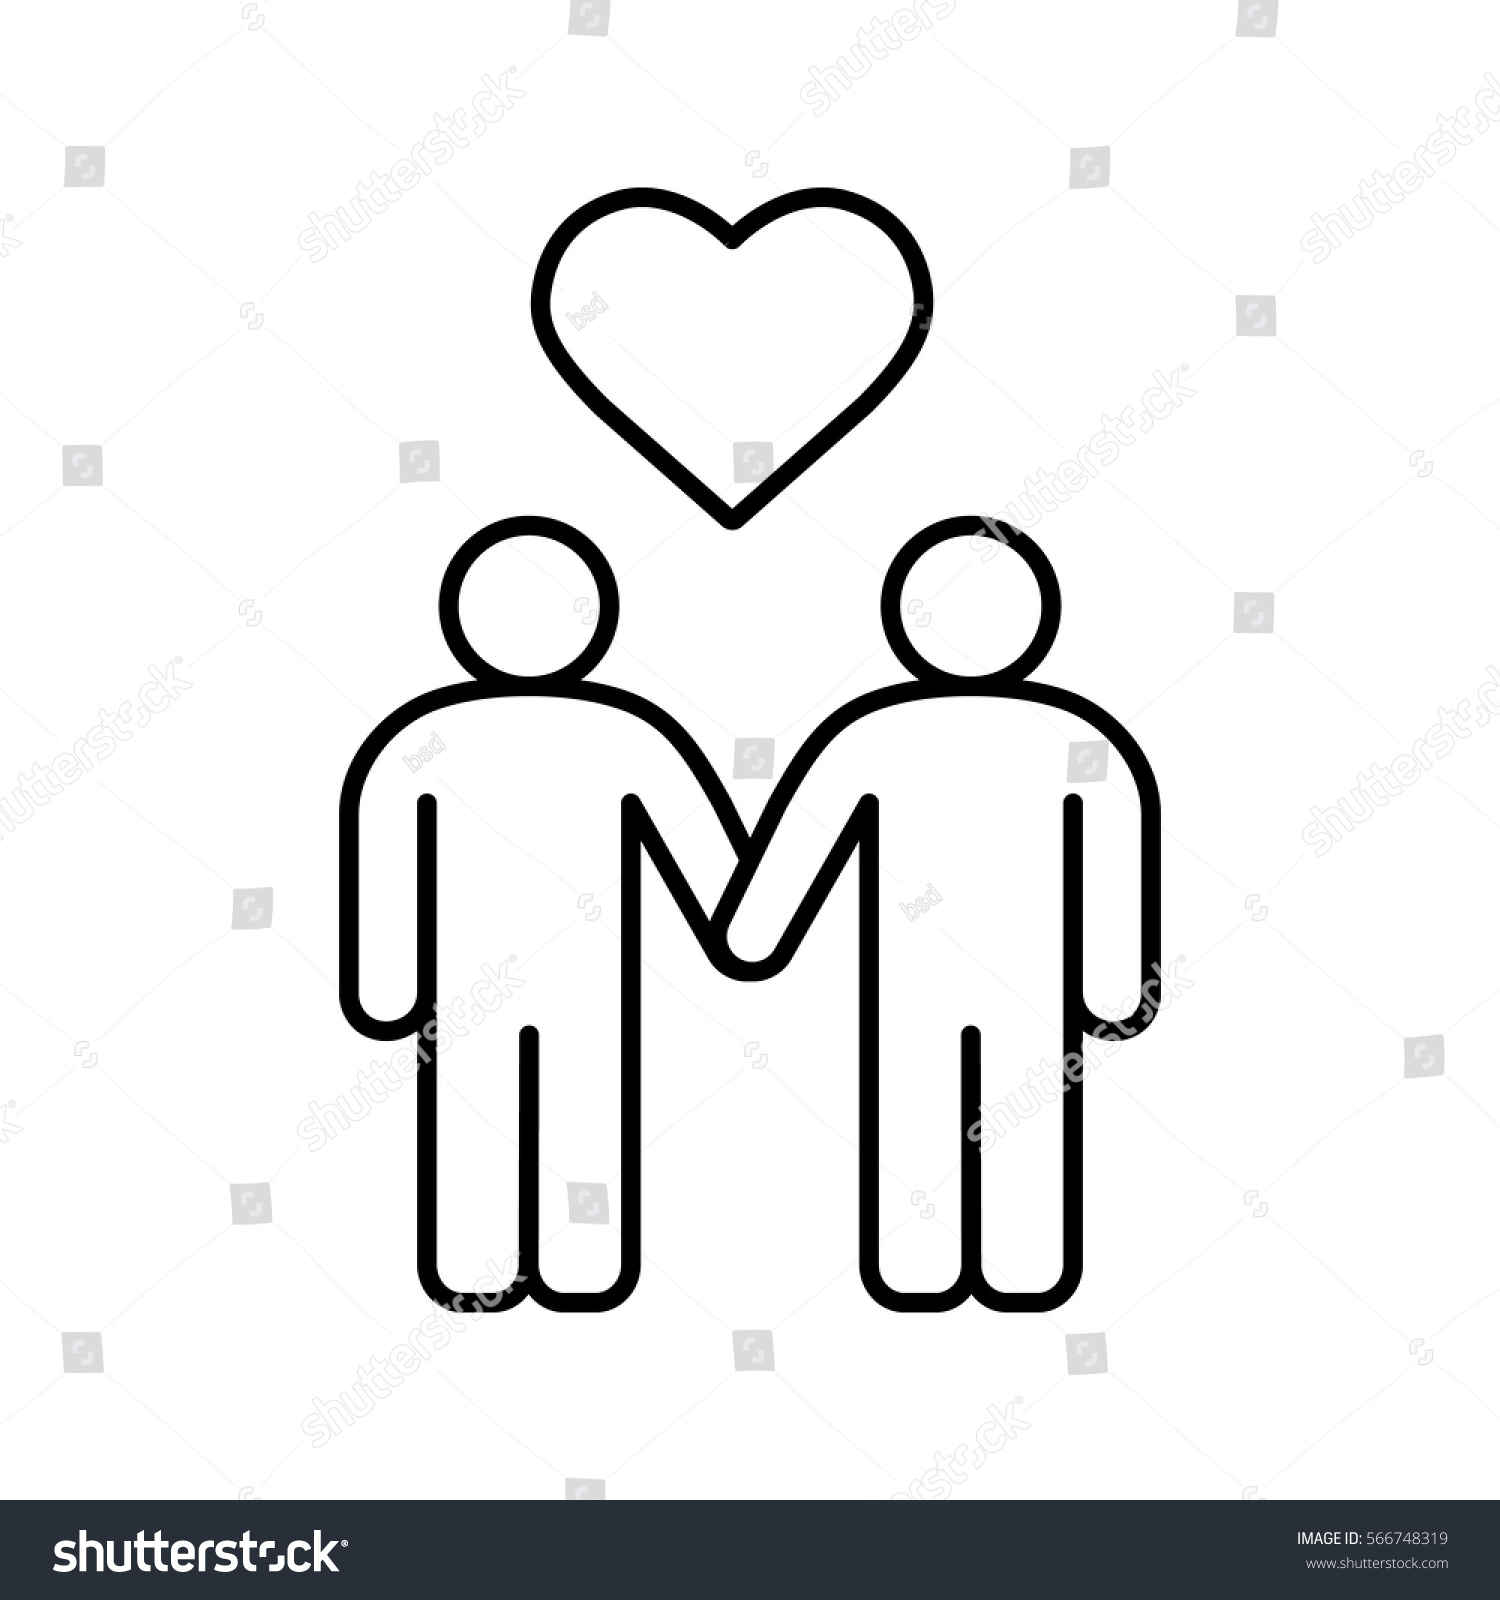 Homosexual couple linear icon. Gays thin line illustration. Two men holding  hands with heart